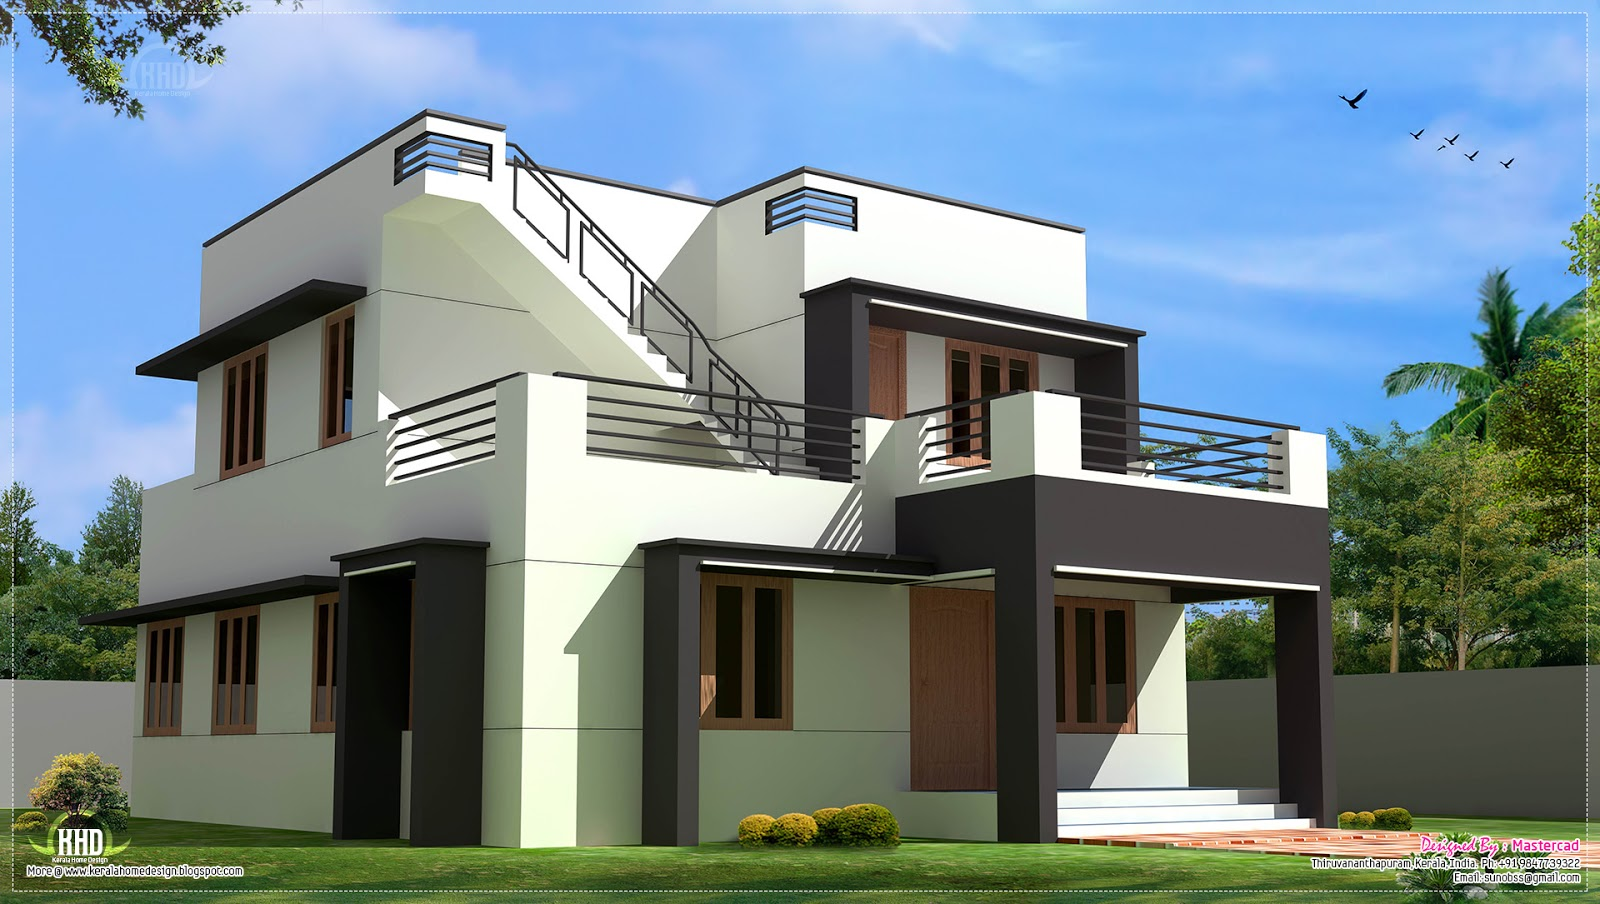 Modern house design in 1700 kerala home design for Modern house blueprints